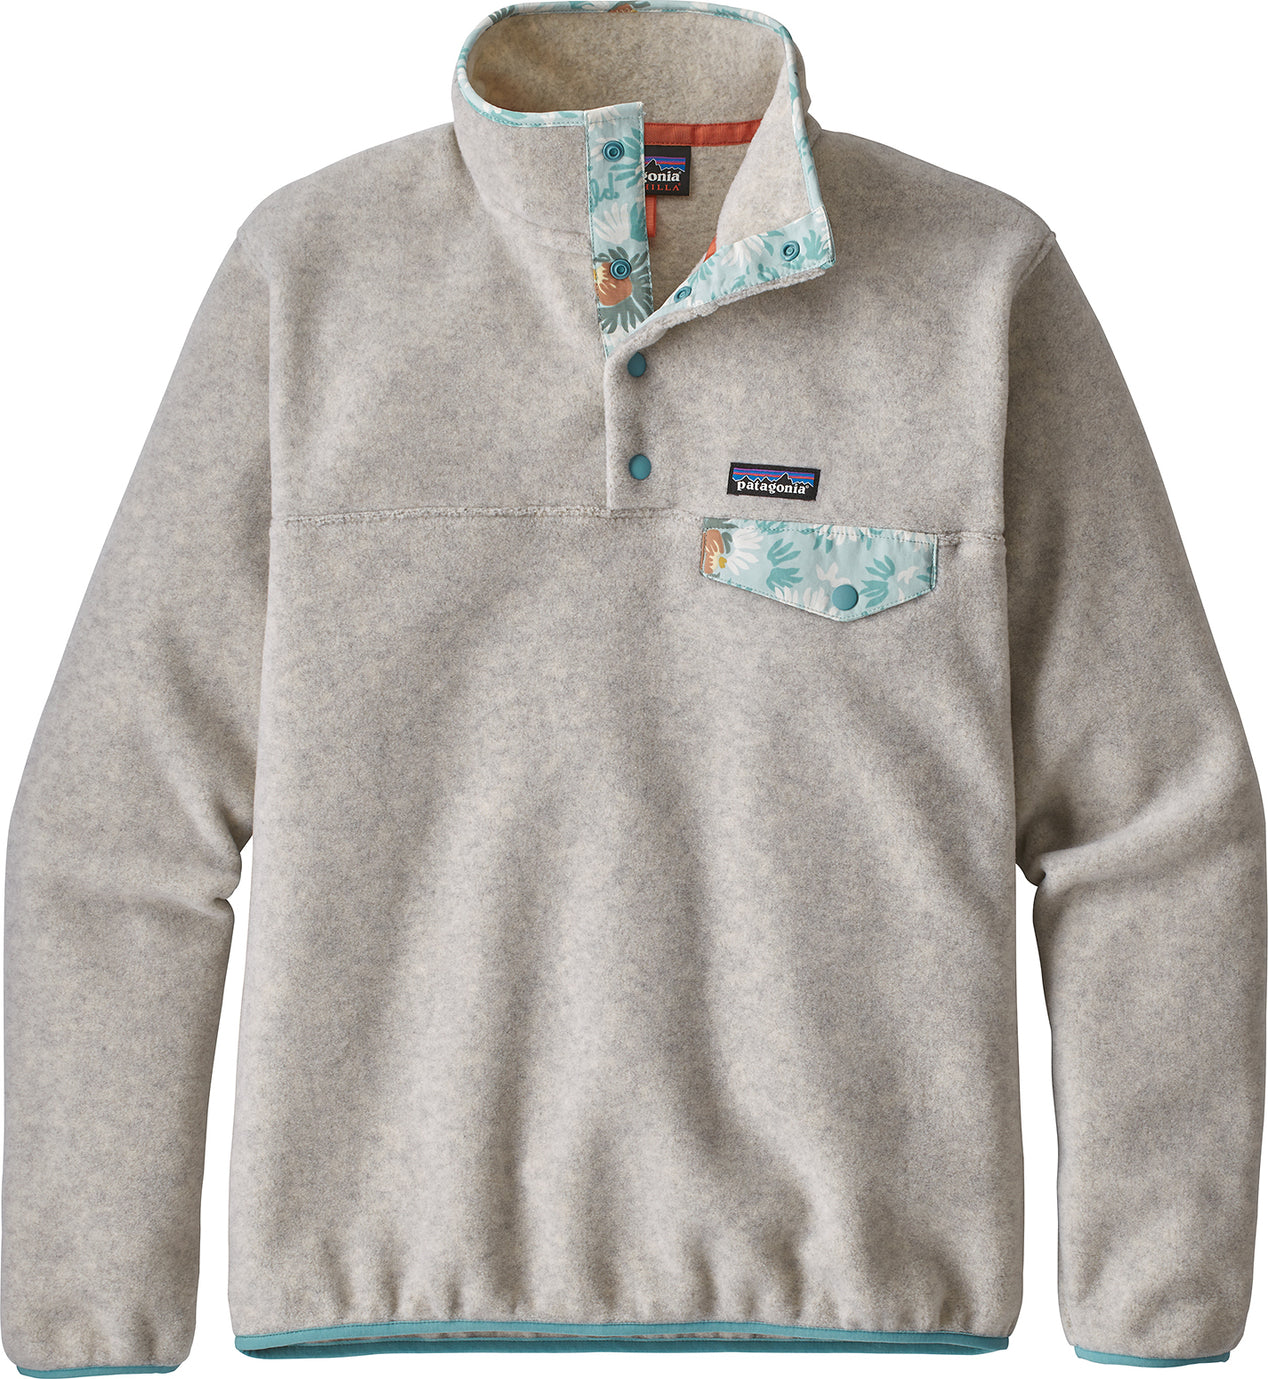 07562667cfc79 Patagonia Lightweight Synchilla Snap-t Pullover - Women's   Altitude ...